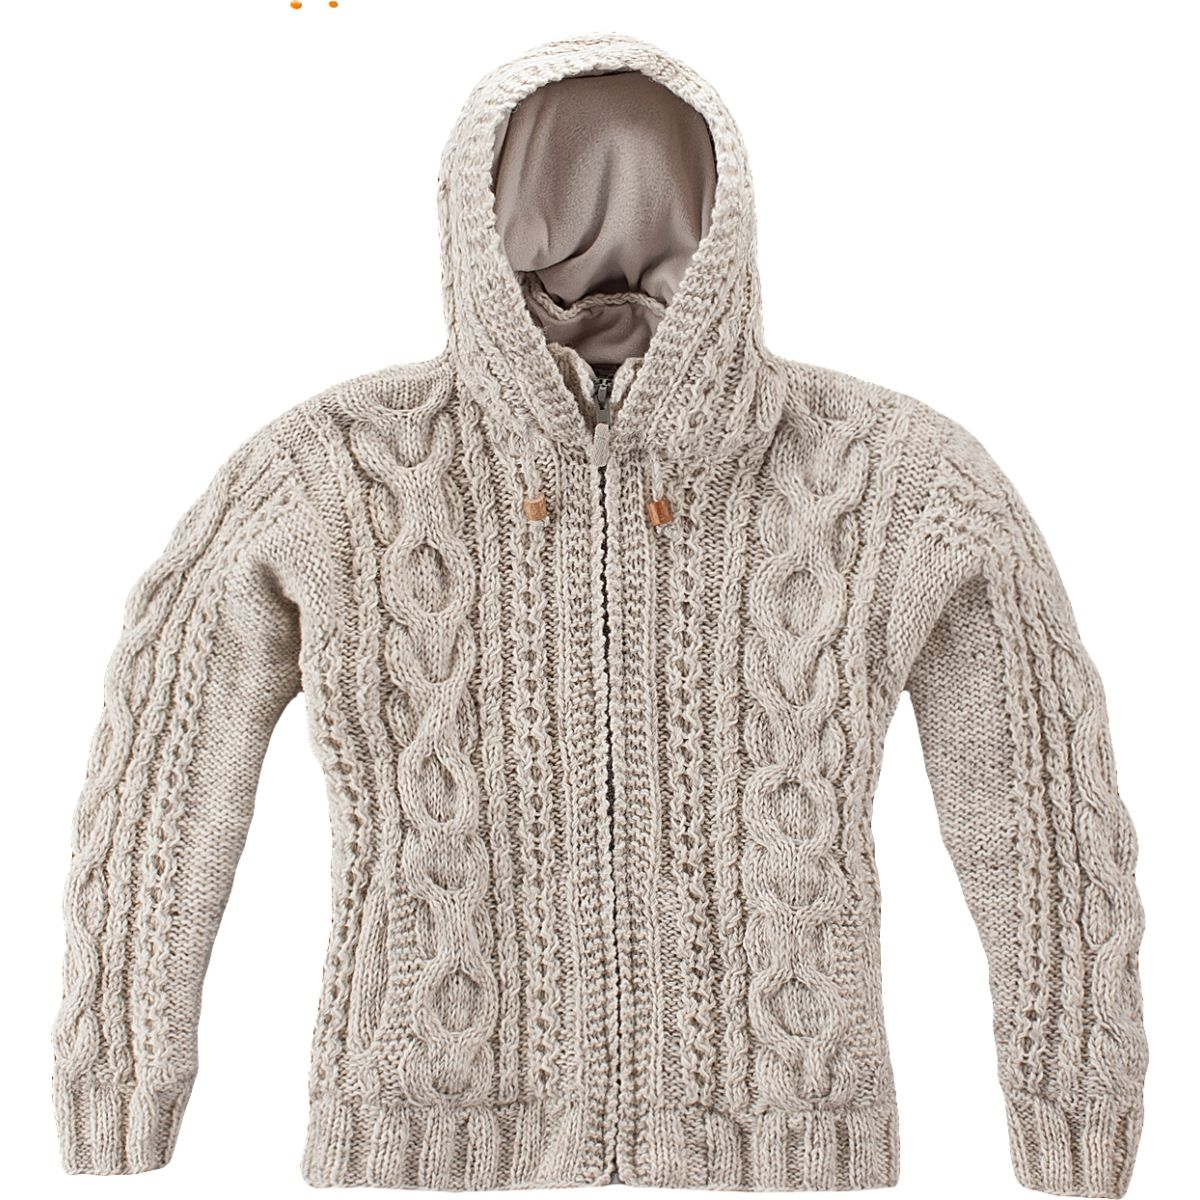 Laundromat Fjord Women's Hooded Sweater | Hooded sweater, Autumn ...